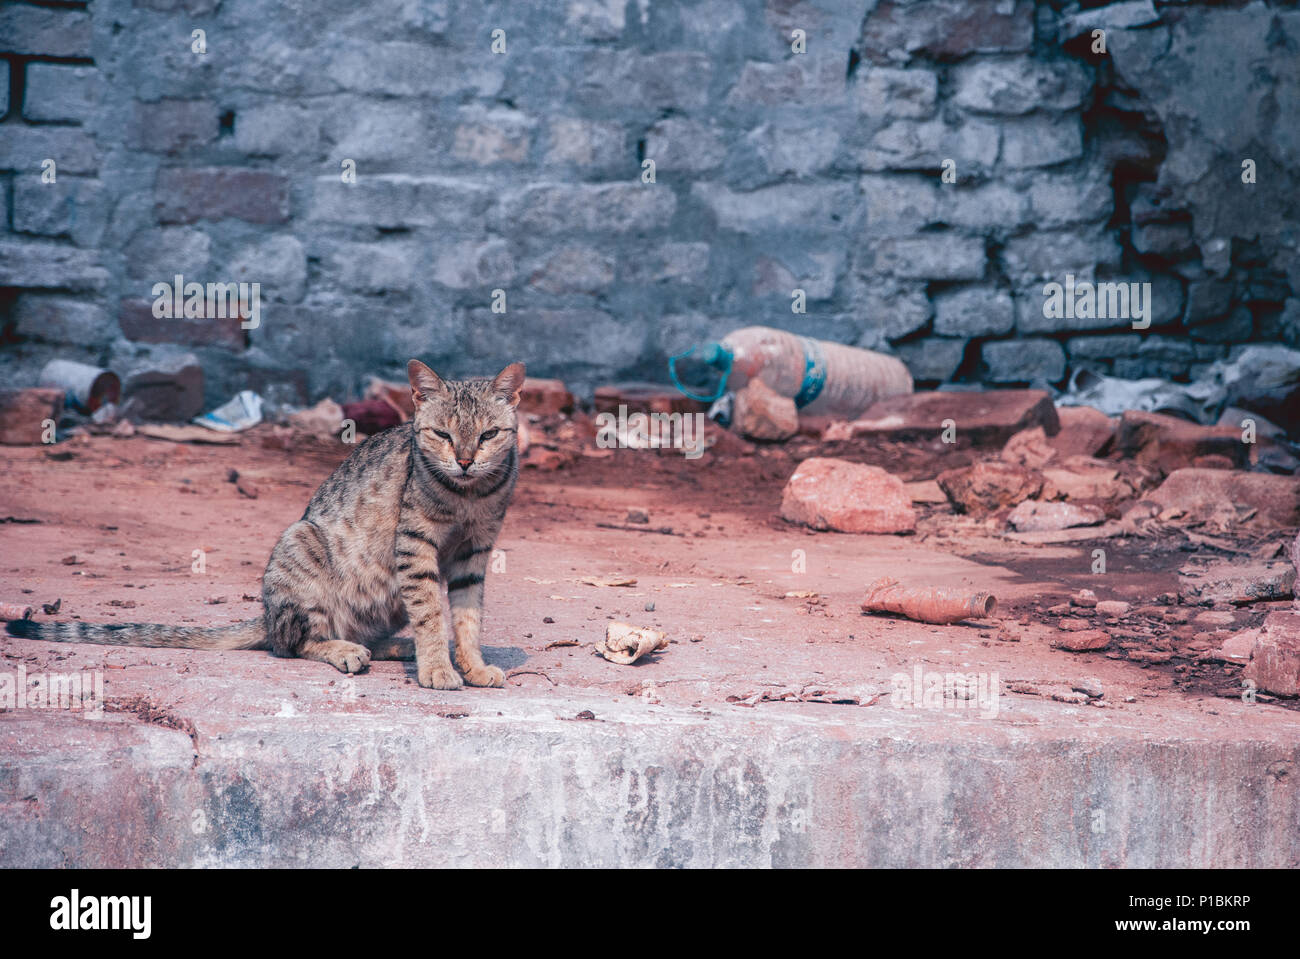 Tiger look alike angry cat before a brick wall inside Ramnagar Fort - Stock Image